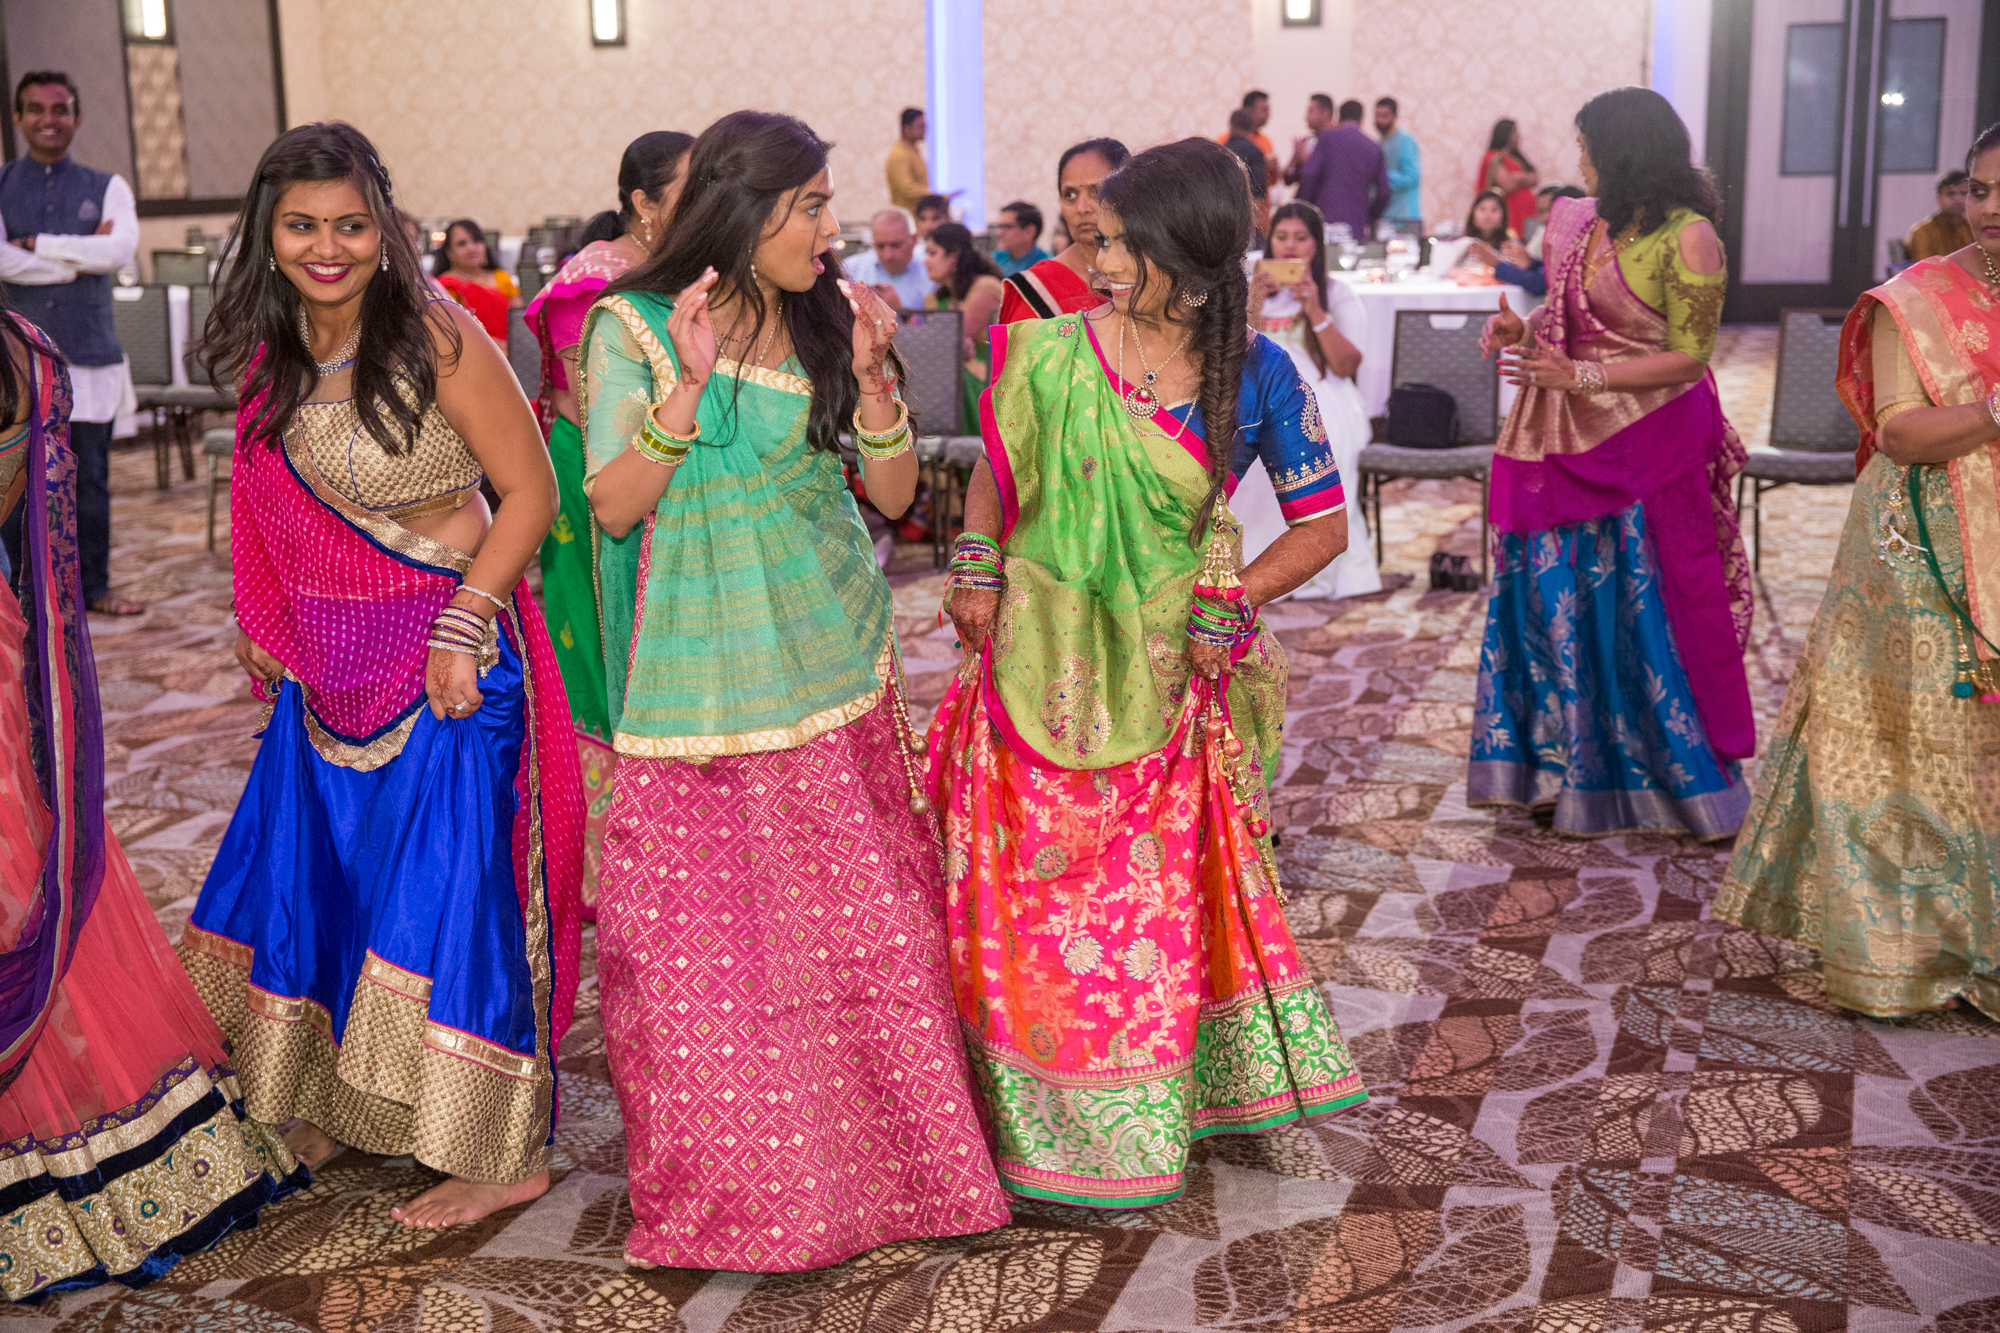 southeast-asian-women-dancing.jpg